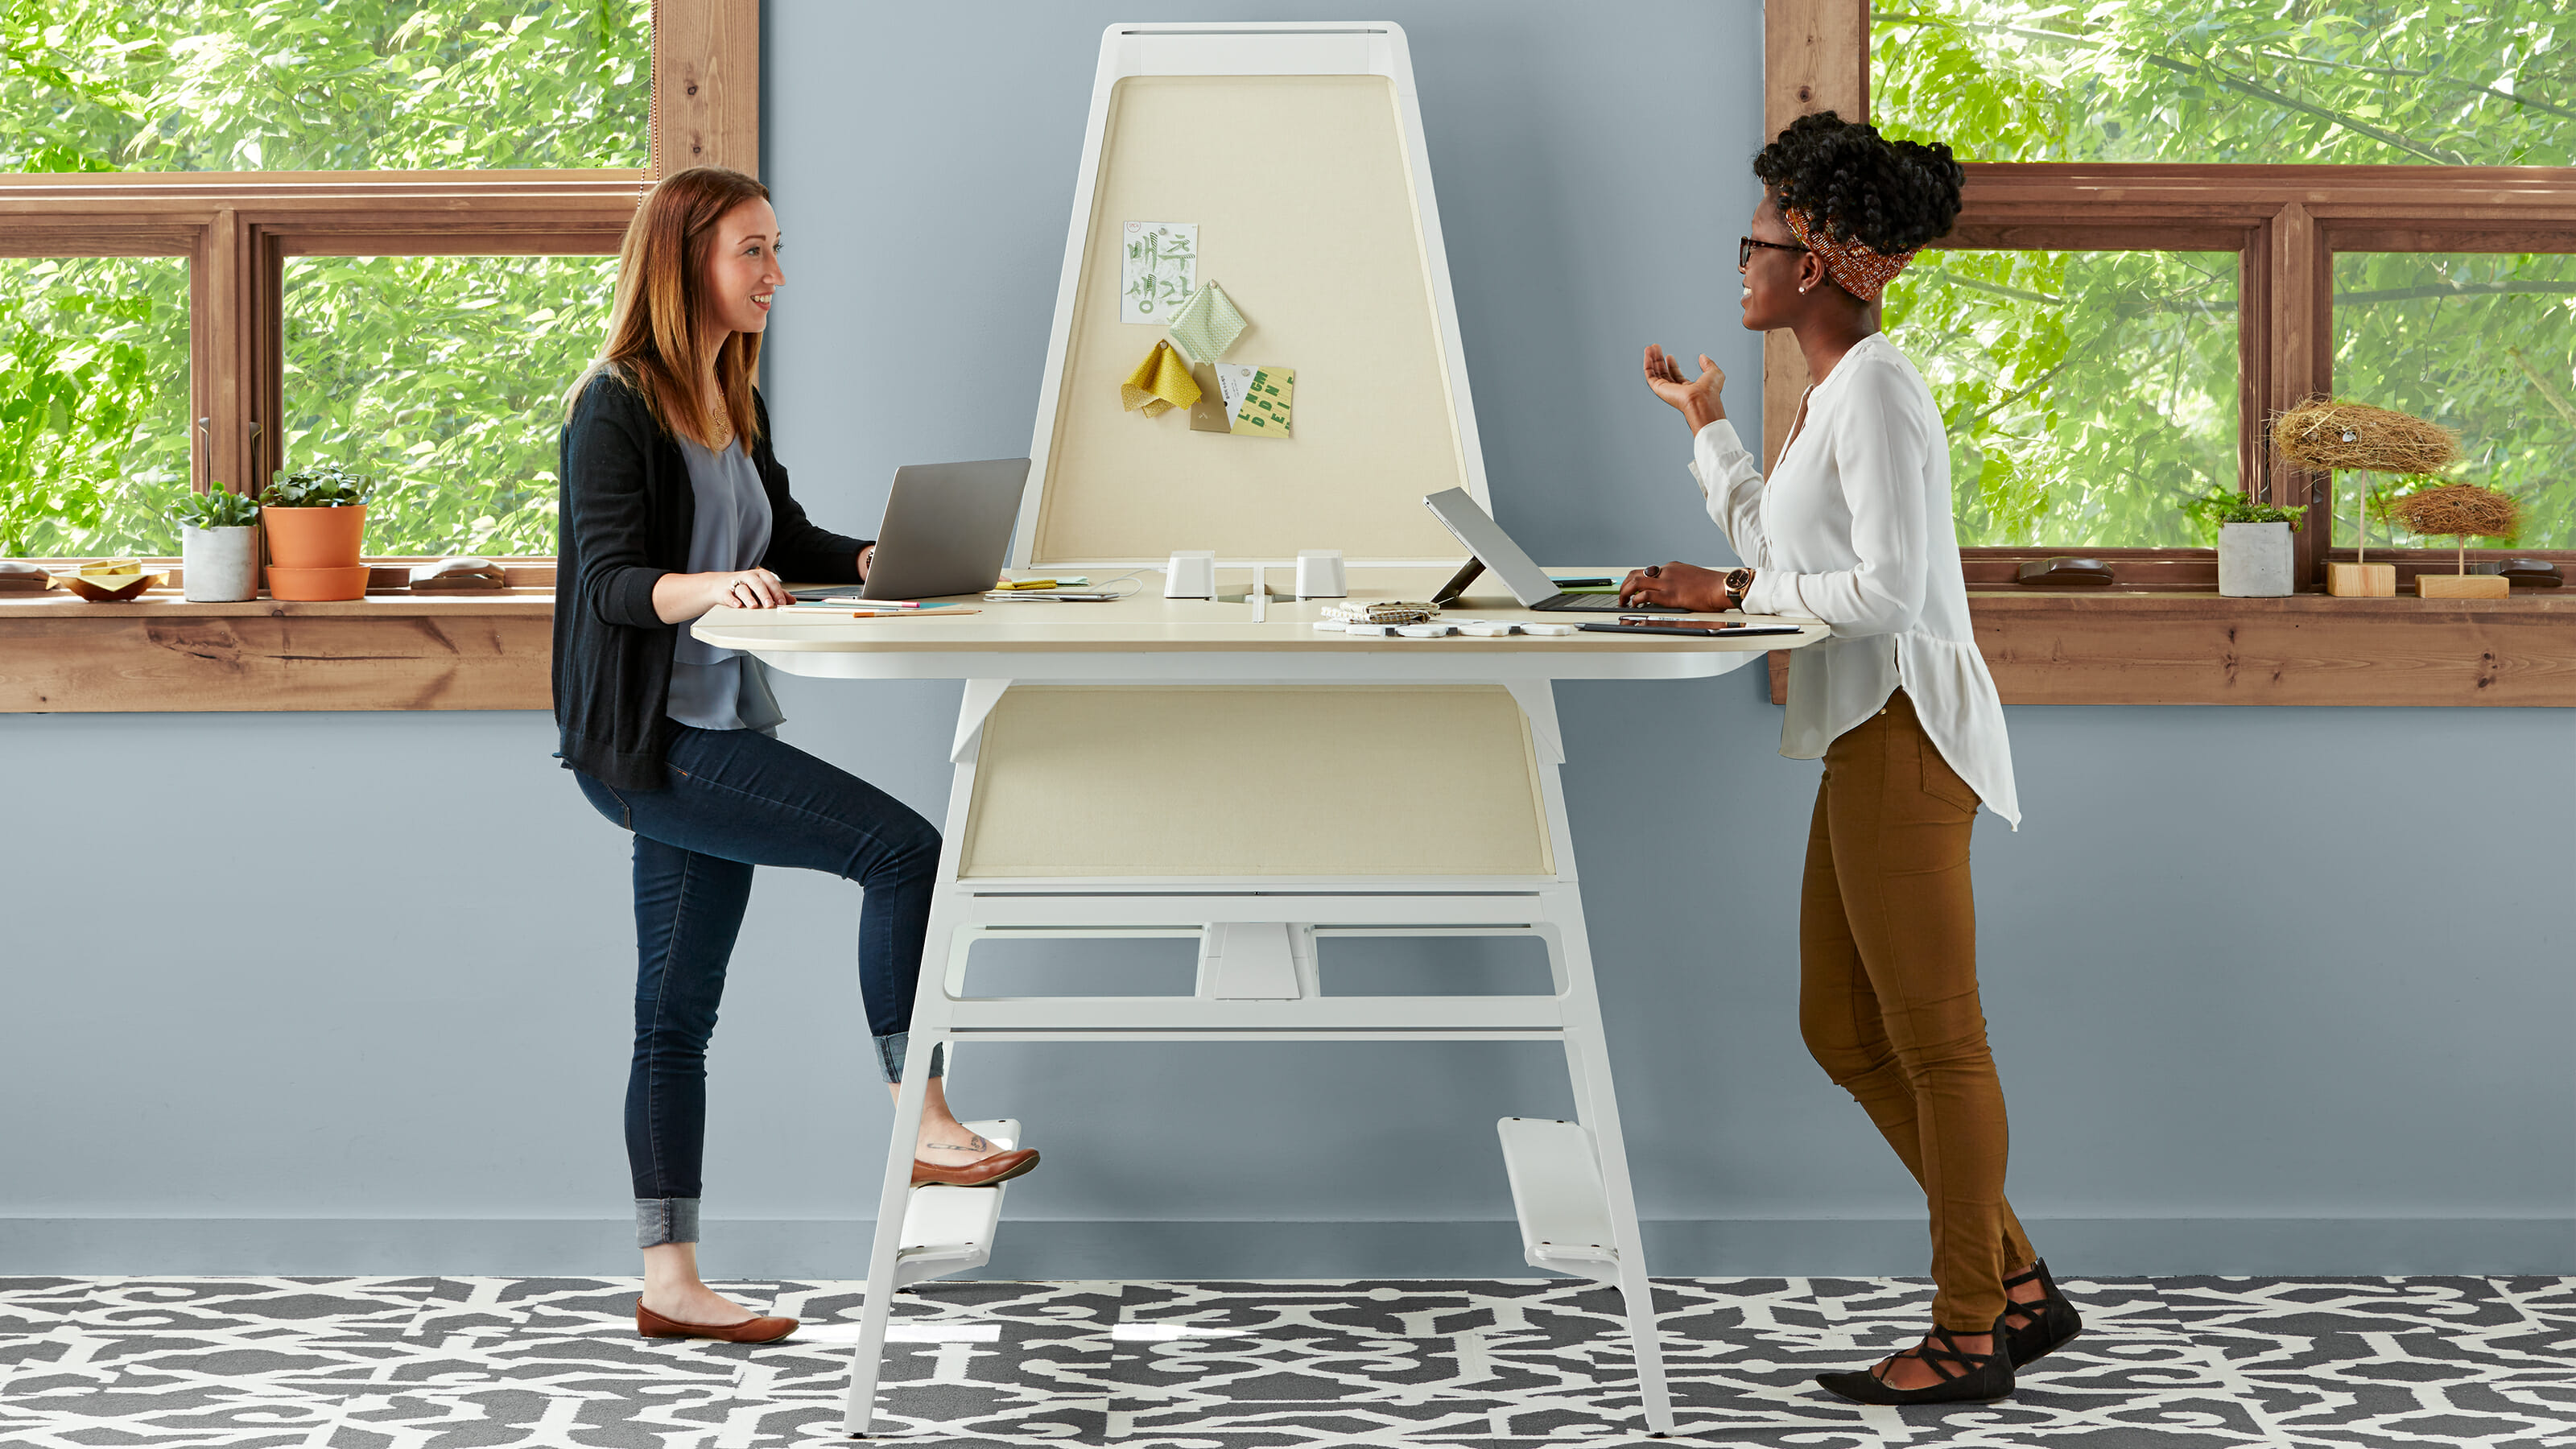 steelcase standing desk modern office interior design